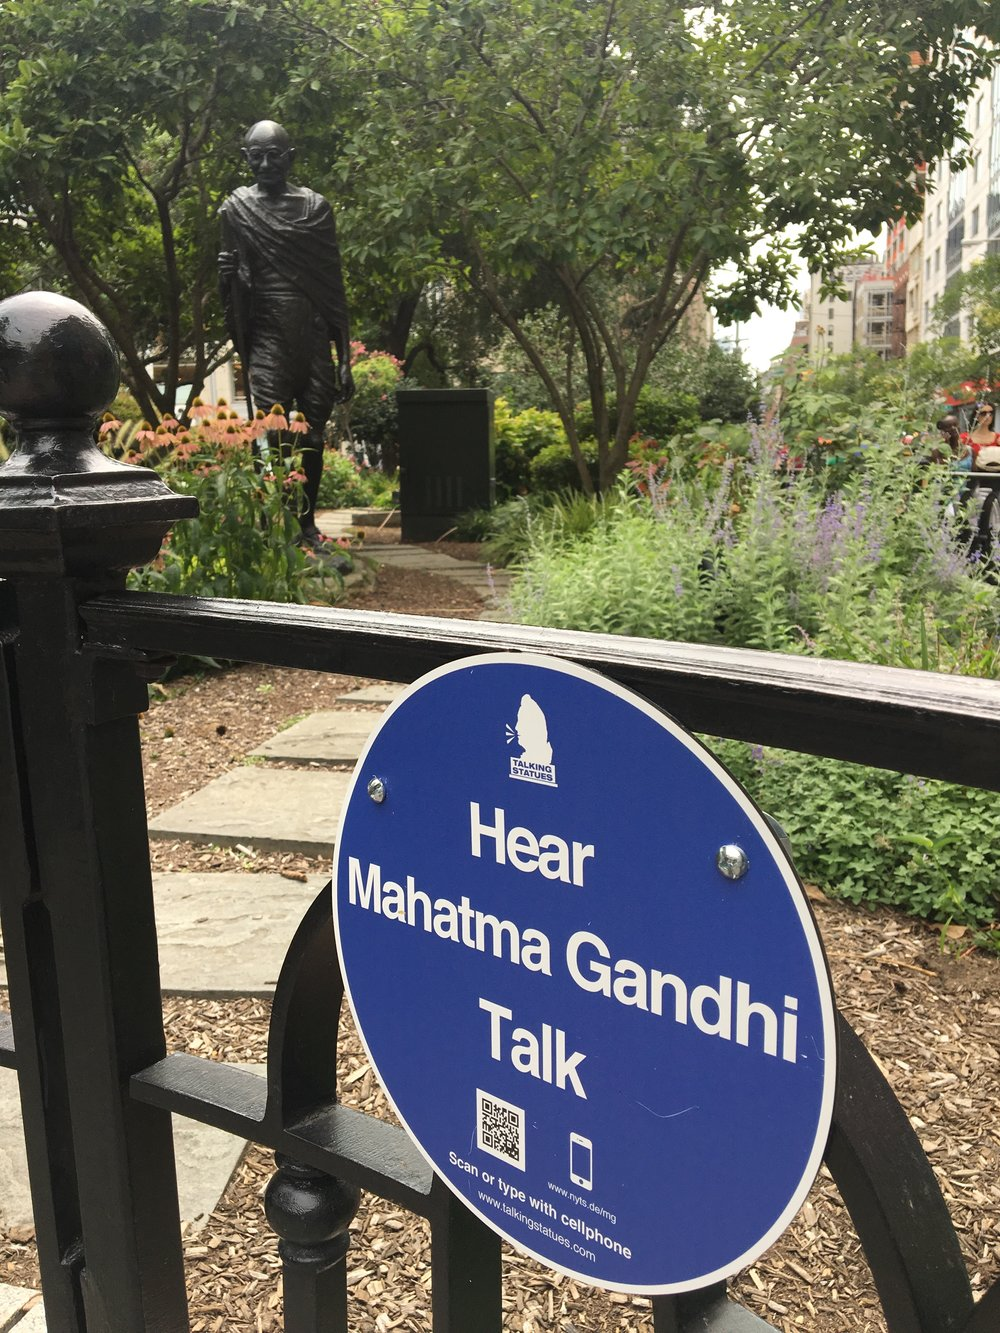 Gandhi's statue along Union Square East offers to speak in English or Hindi